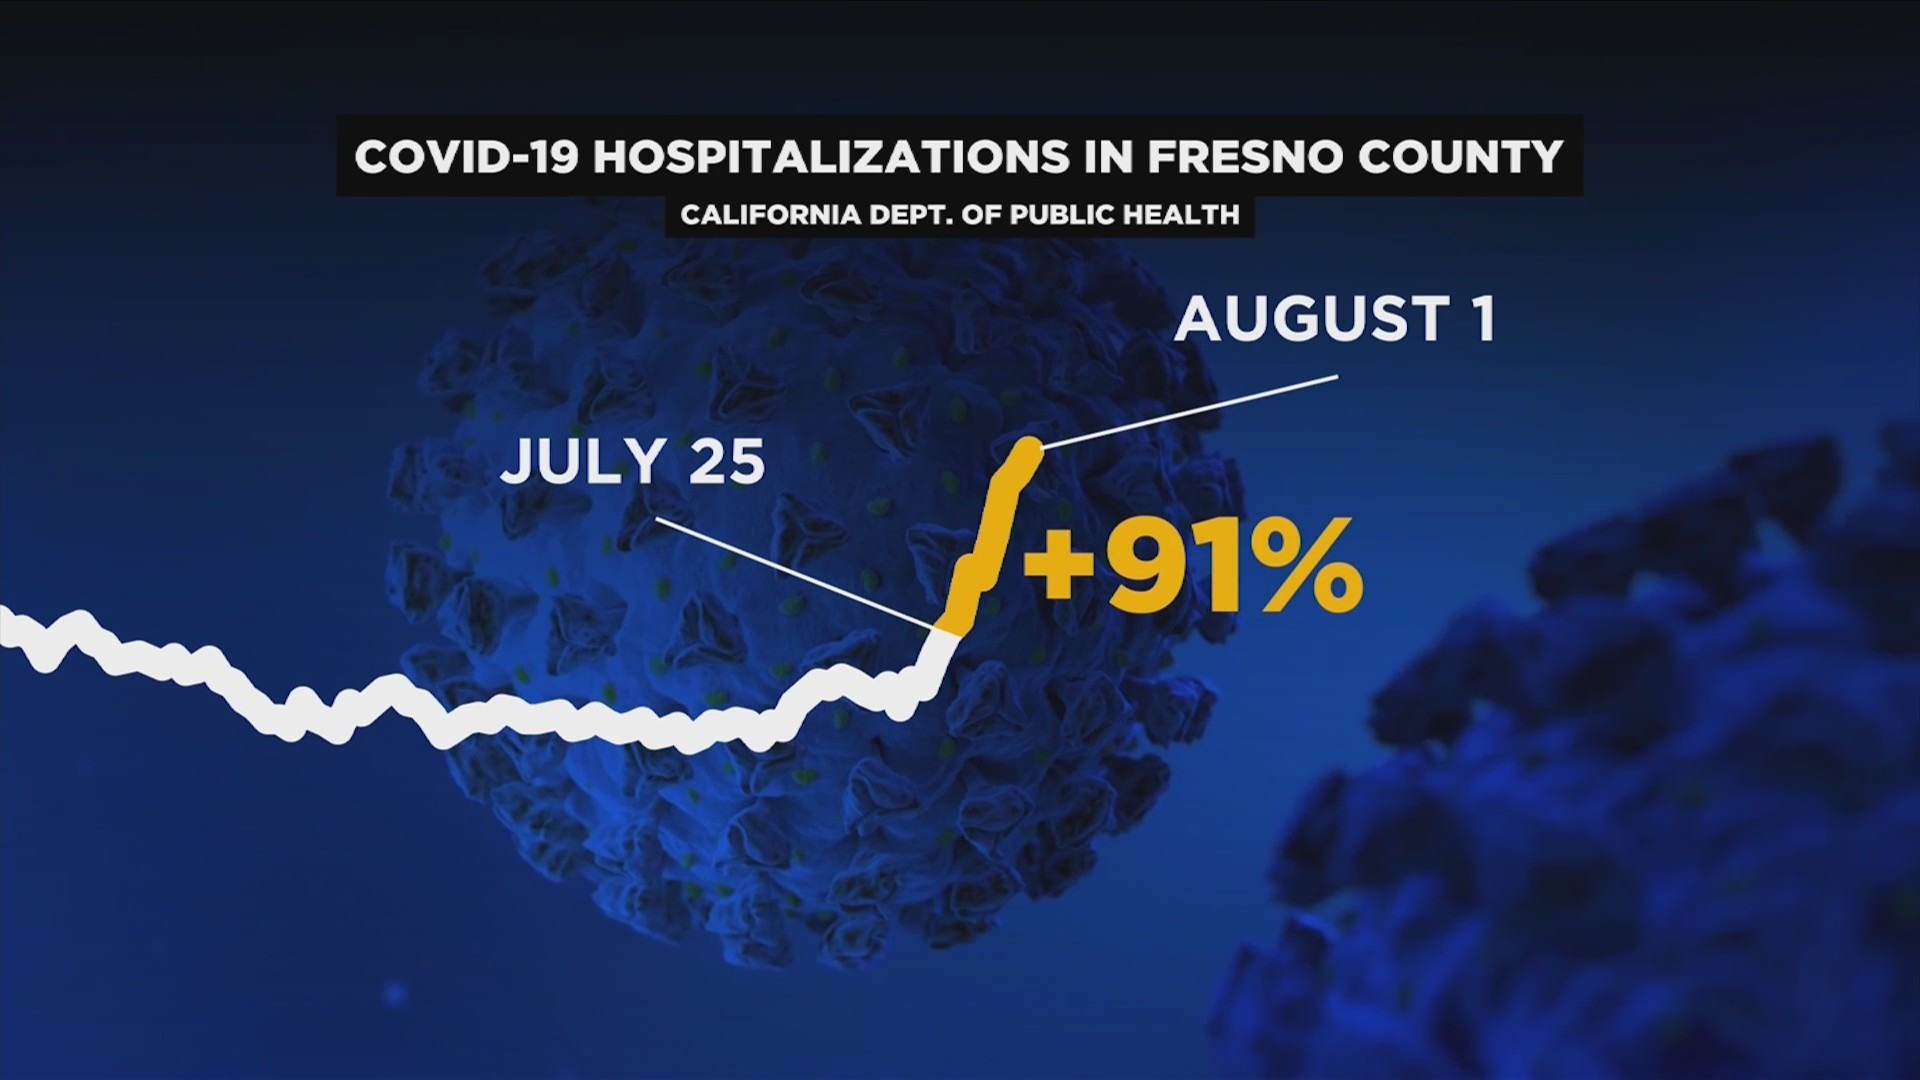 COVID-19 hospitalizations surge in Fresno County, local hospital says vast majority of patients are unvaccinated